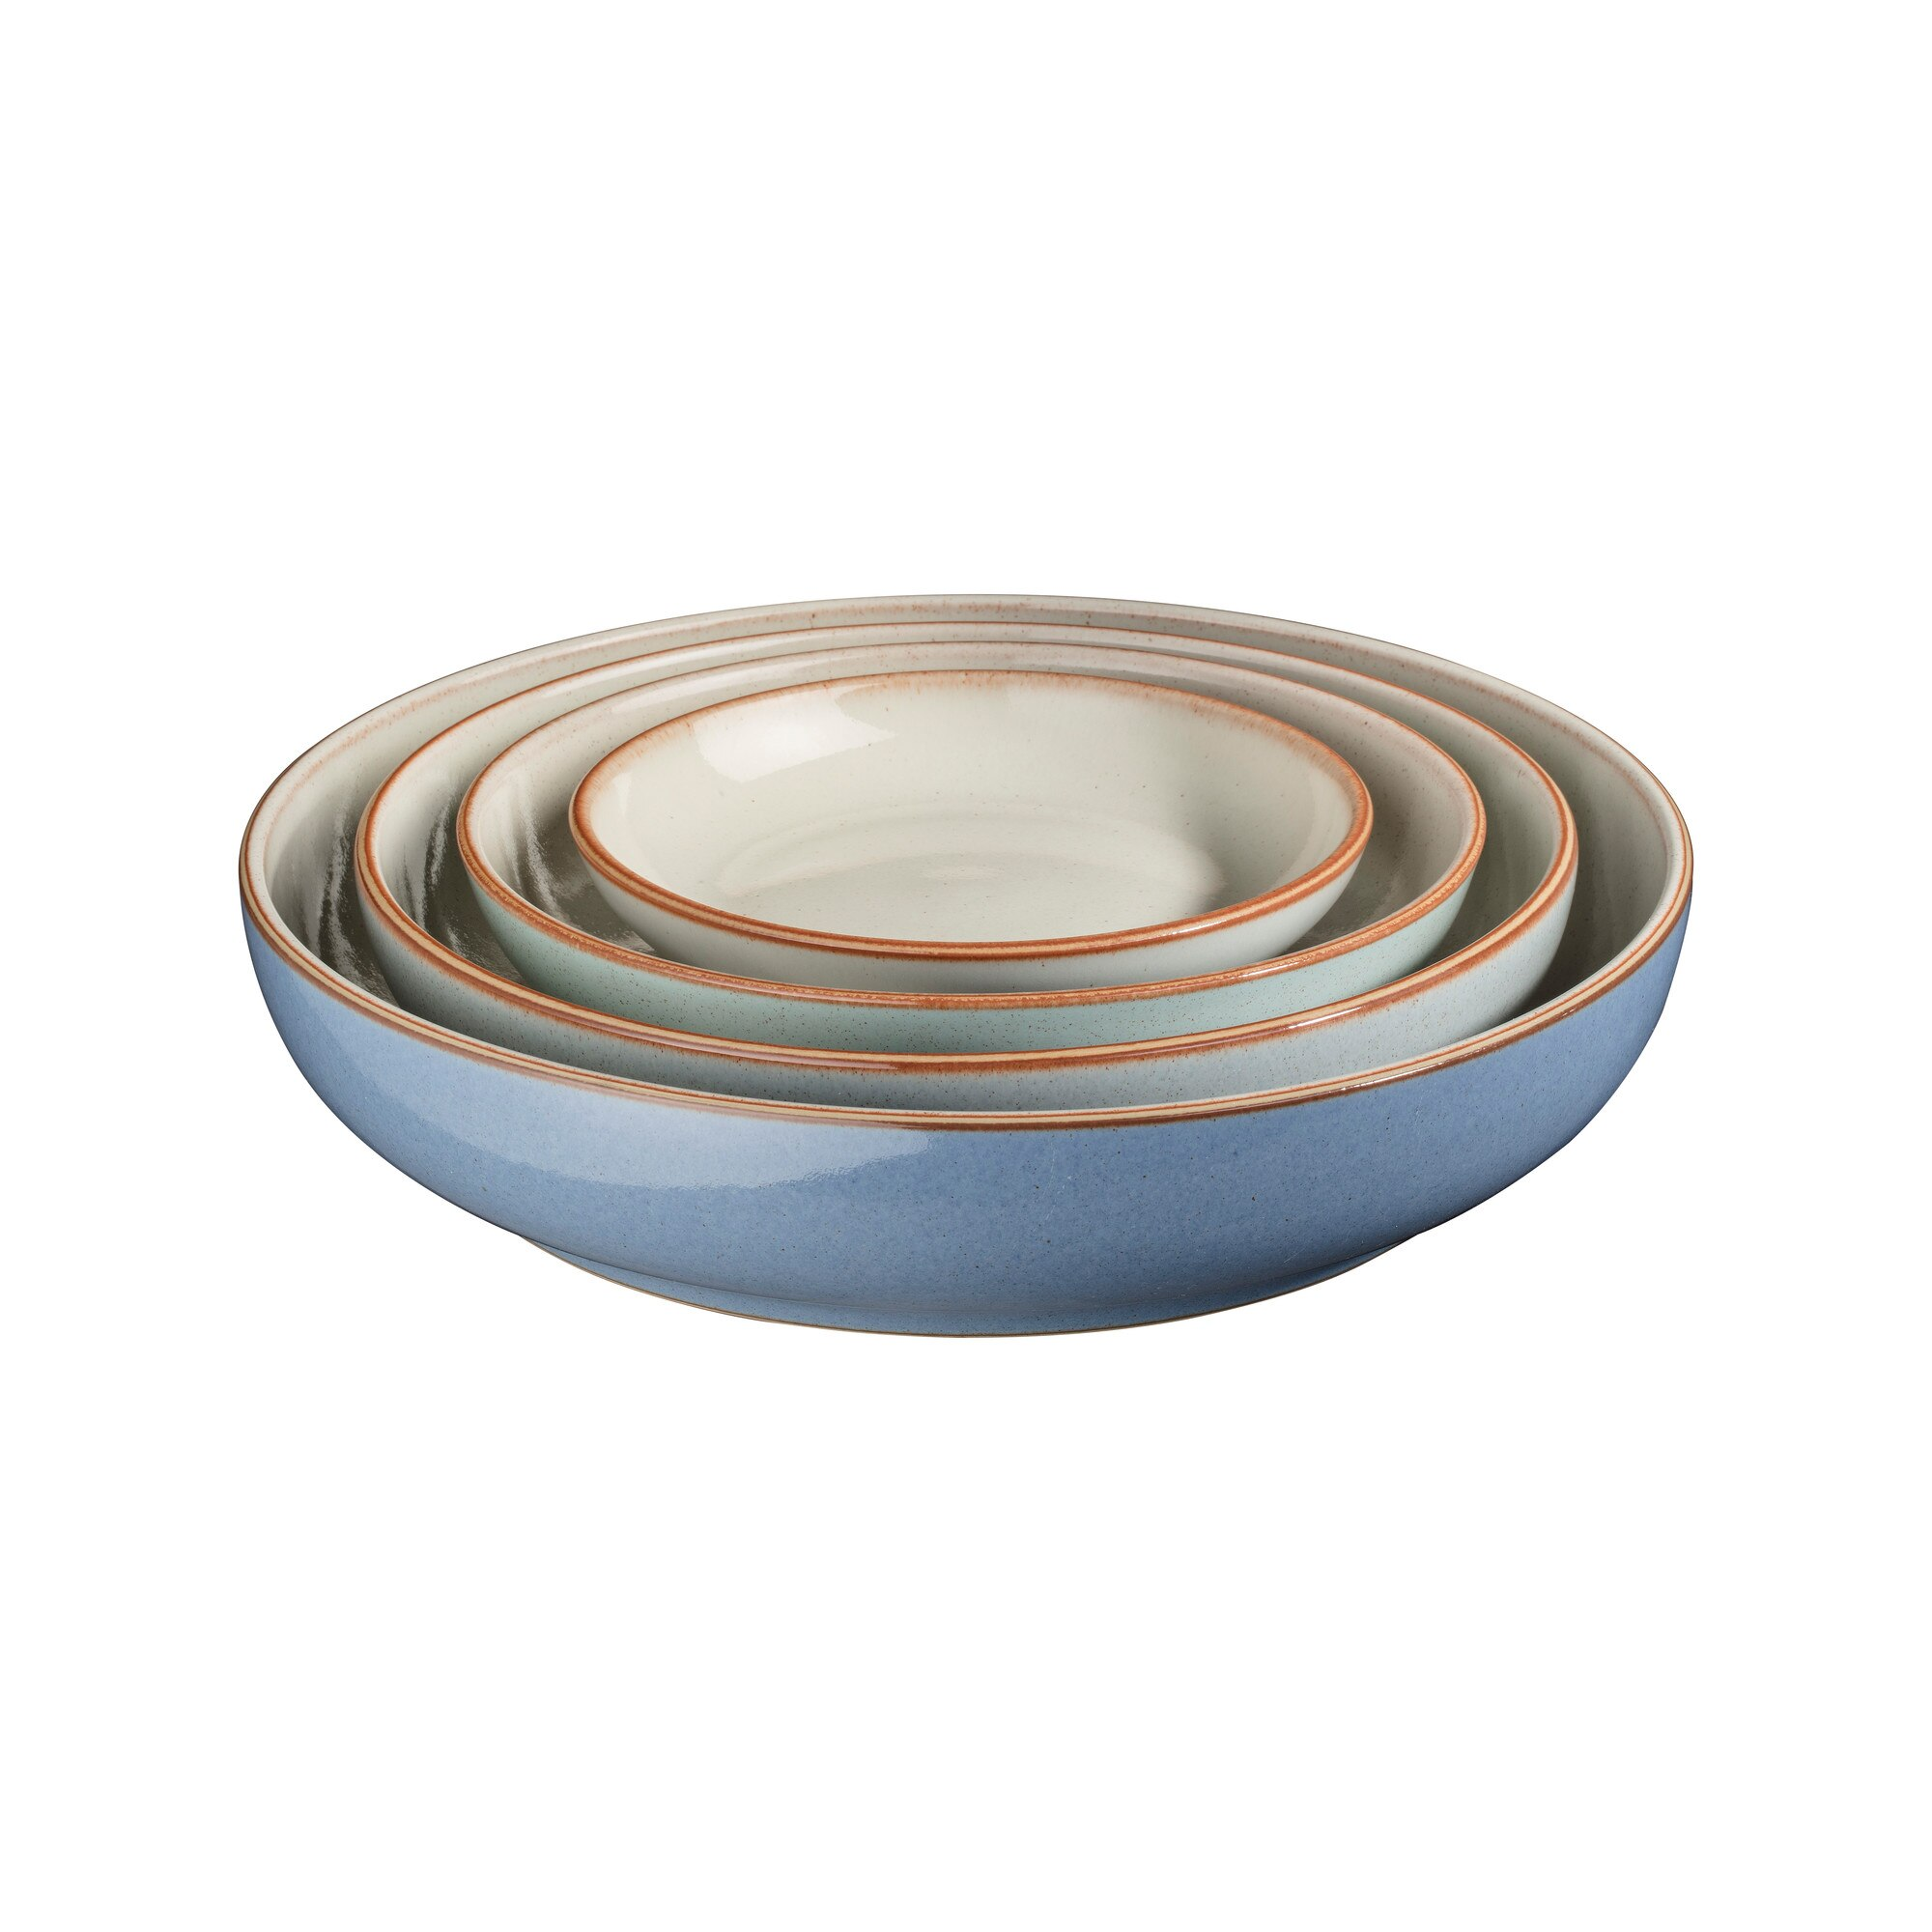 Compare prices for Denby Always Entertaining - The Blue Edit 4 Piece Nesting Bowl Set